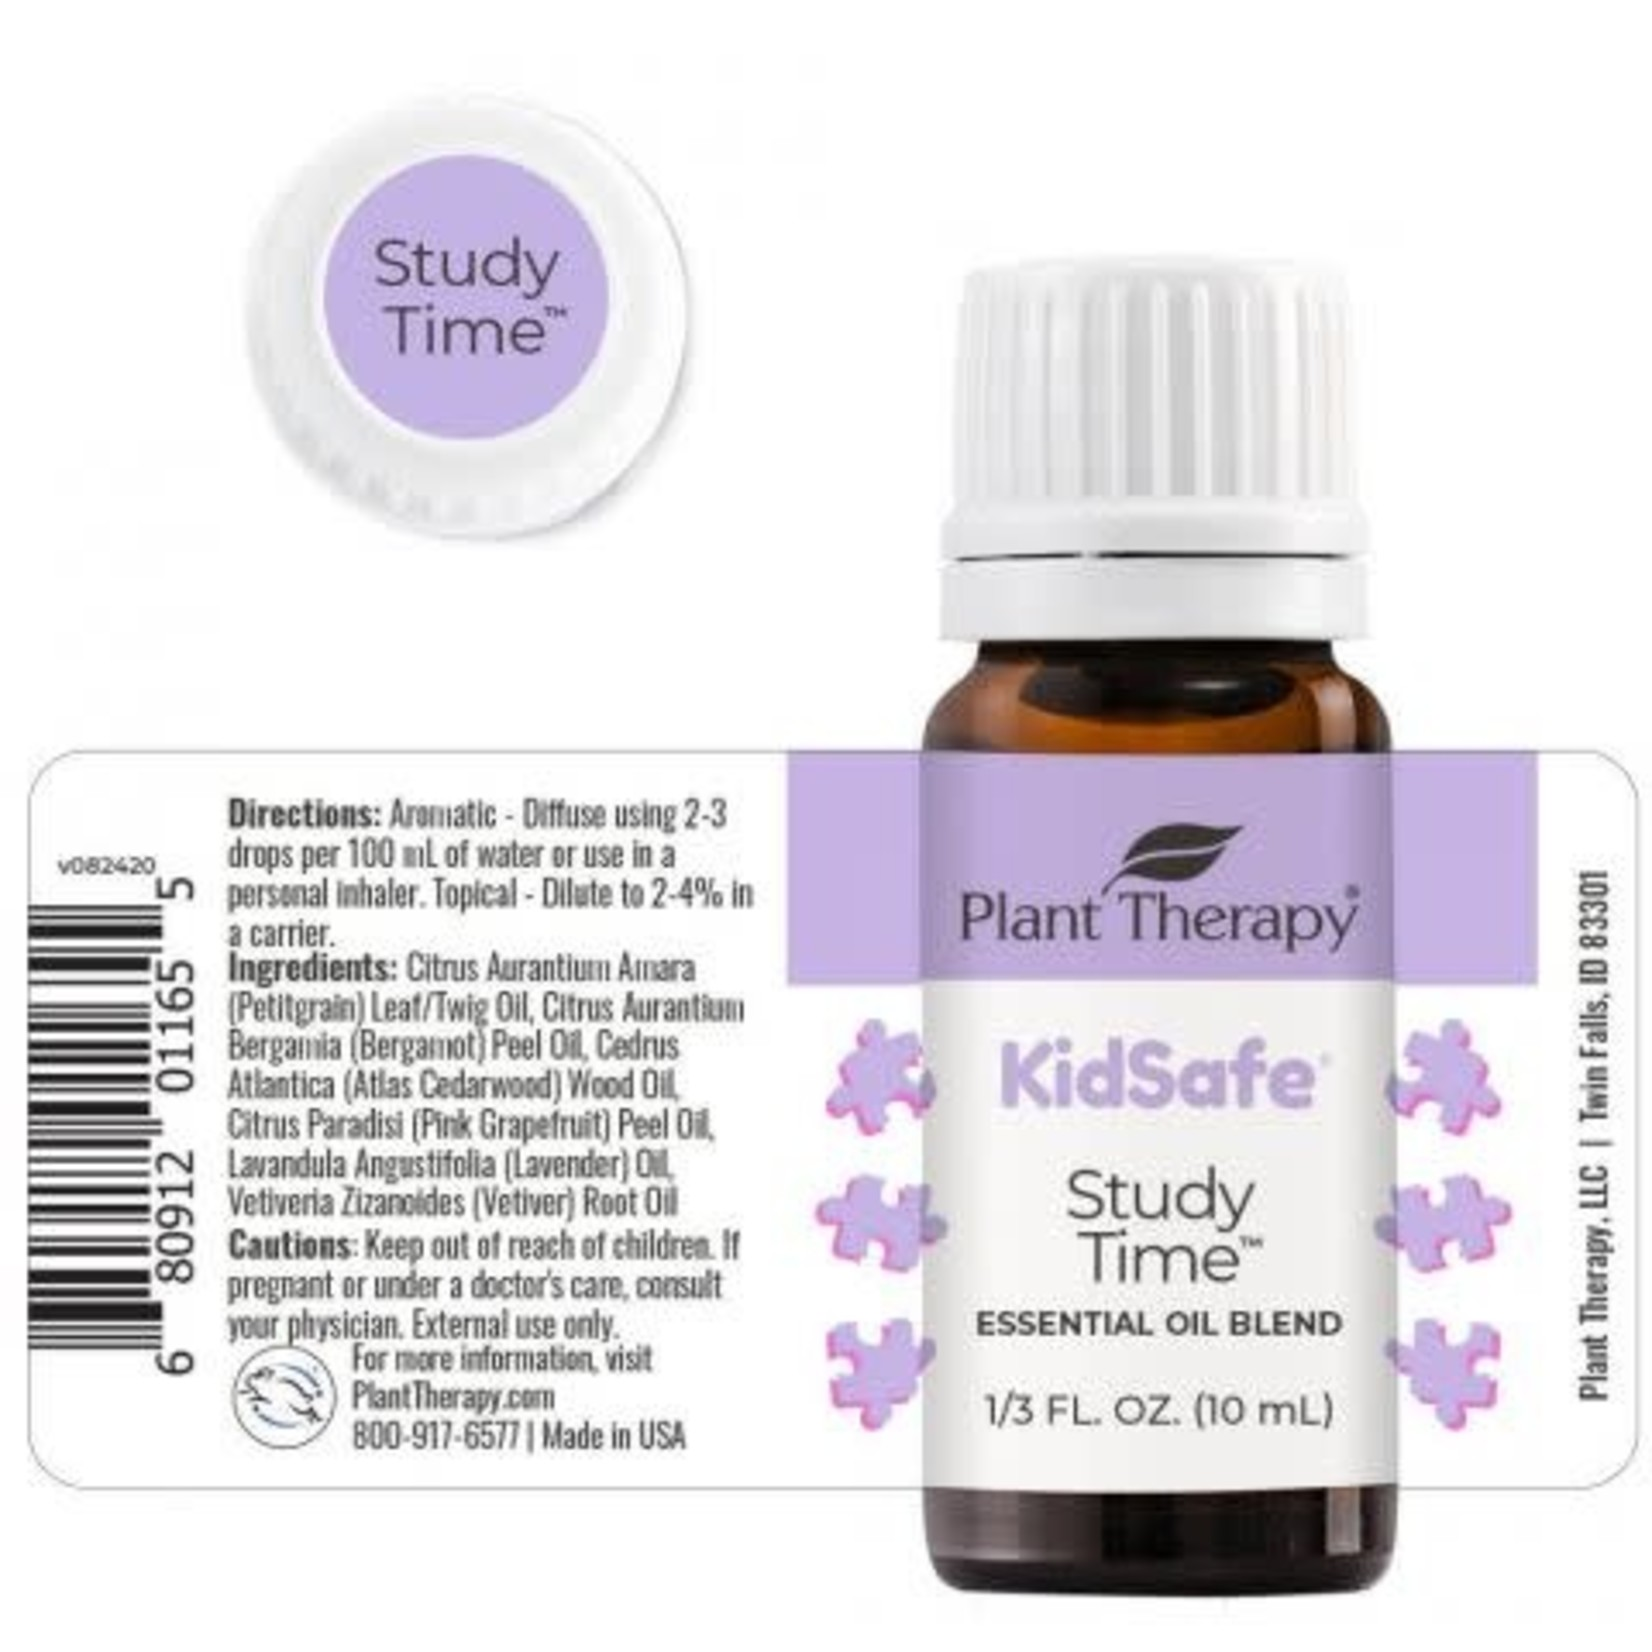 Plant Therapy PT Study Time Essential Oil 10ml